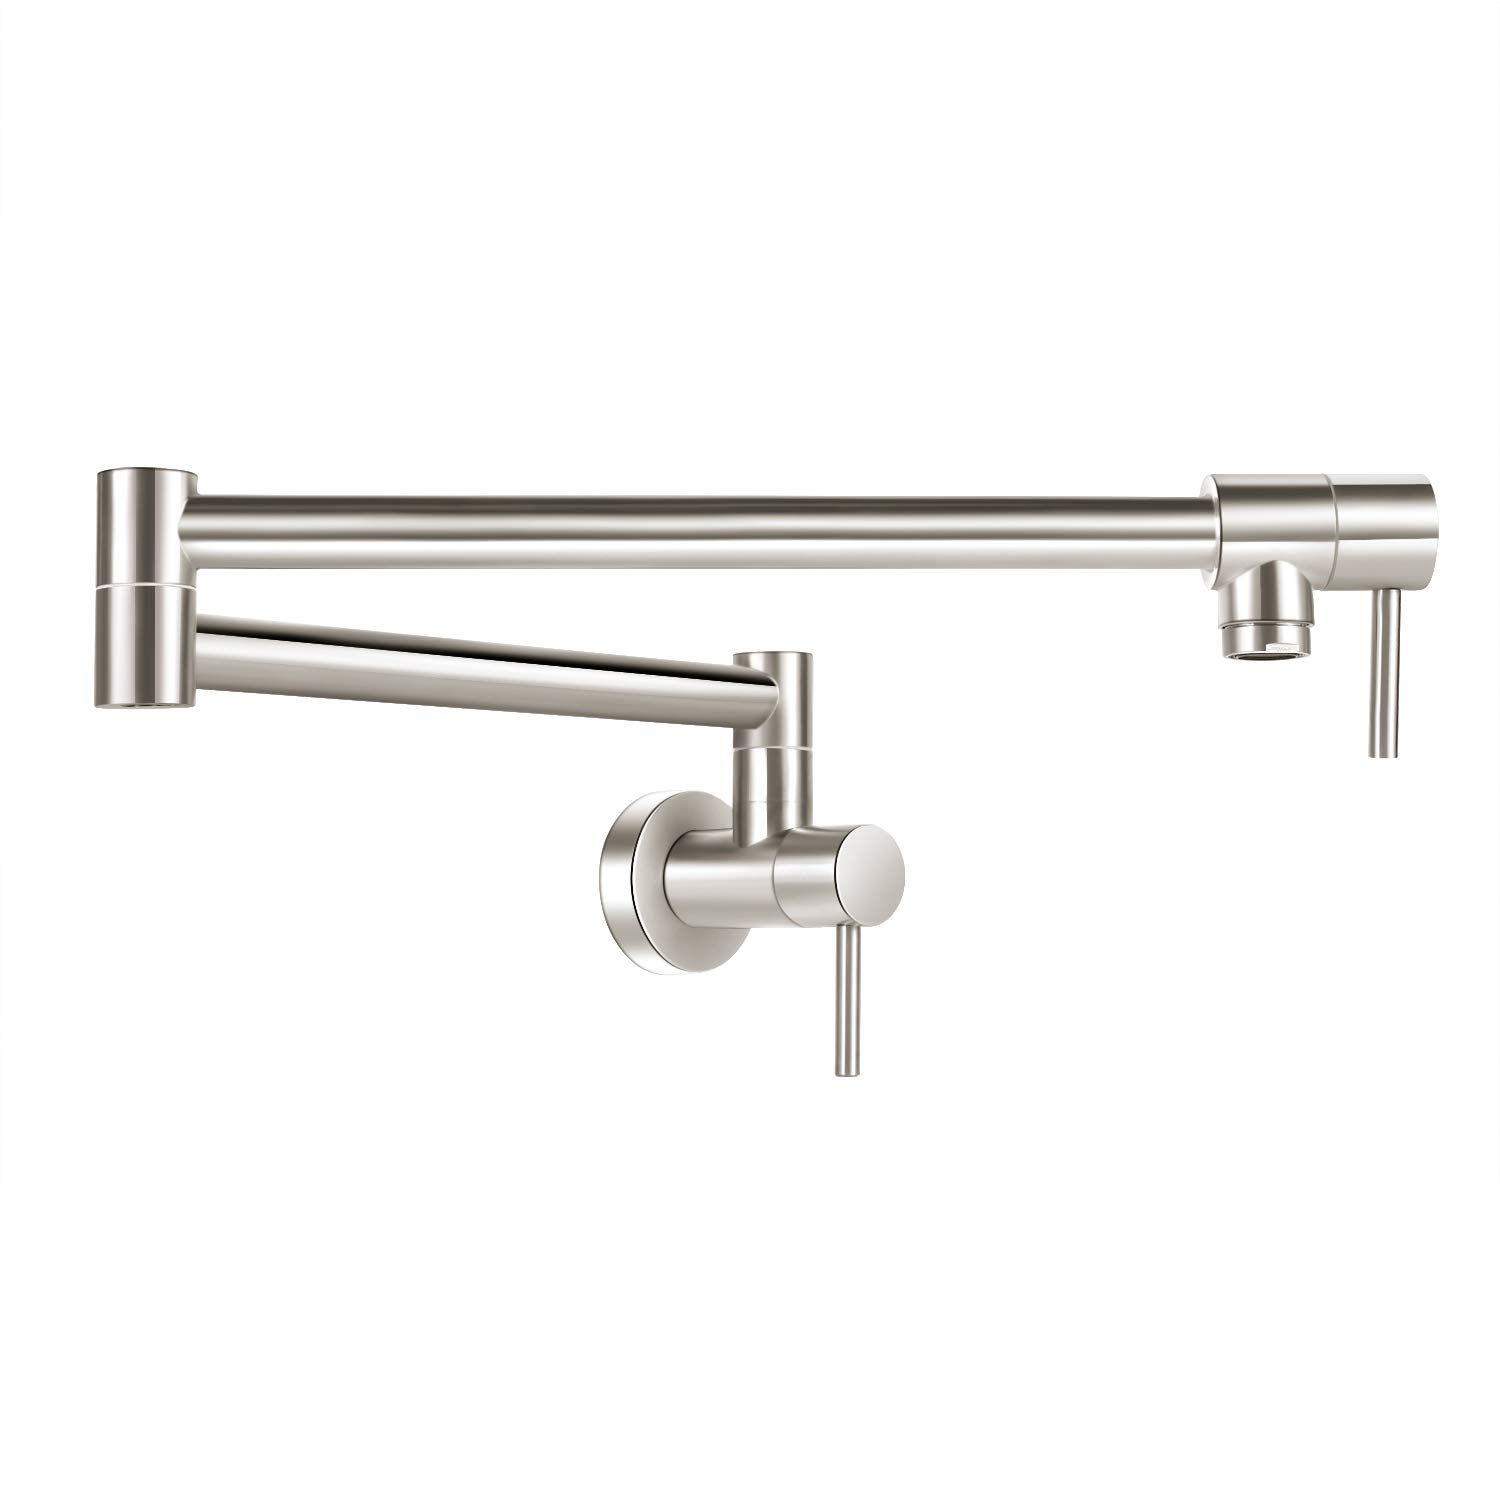 Pot Filler Faucet Stainless Steel COOLWEST Commercial Wall Mount Kitchen Faucet Folding Double Joint Swing Arm Stretchable 18 Inch 2 Handles Sink Faucet by COOLWEST